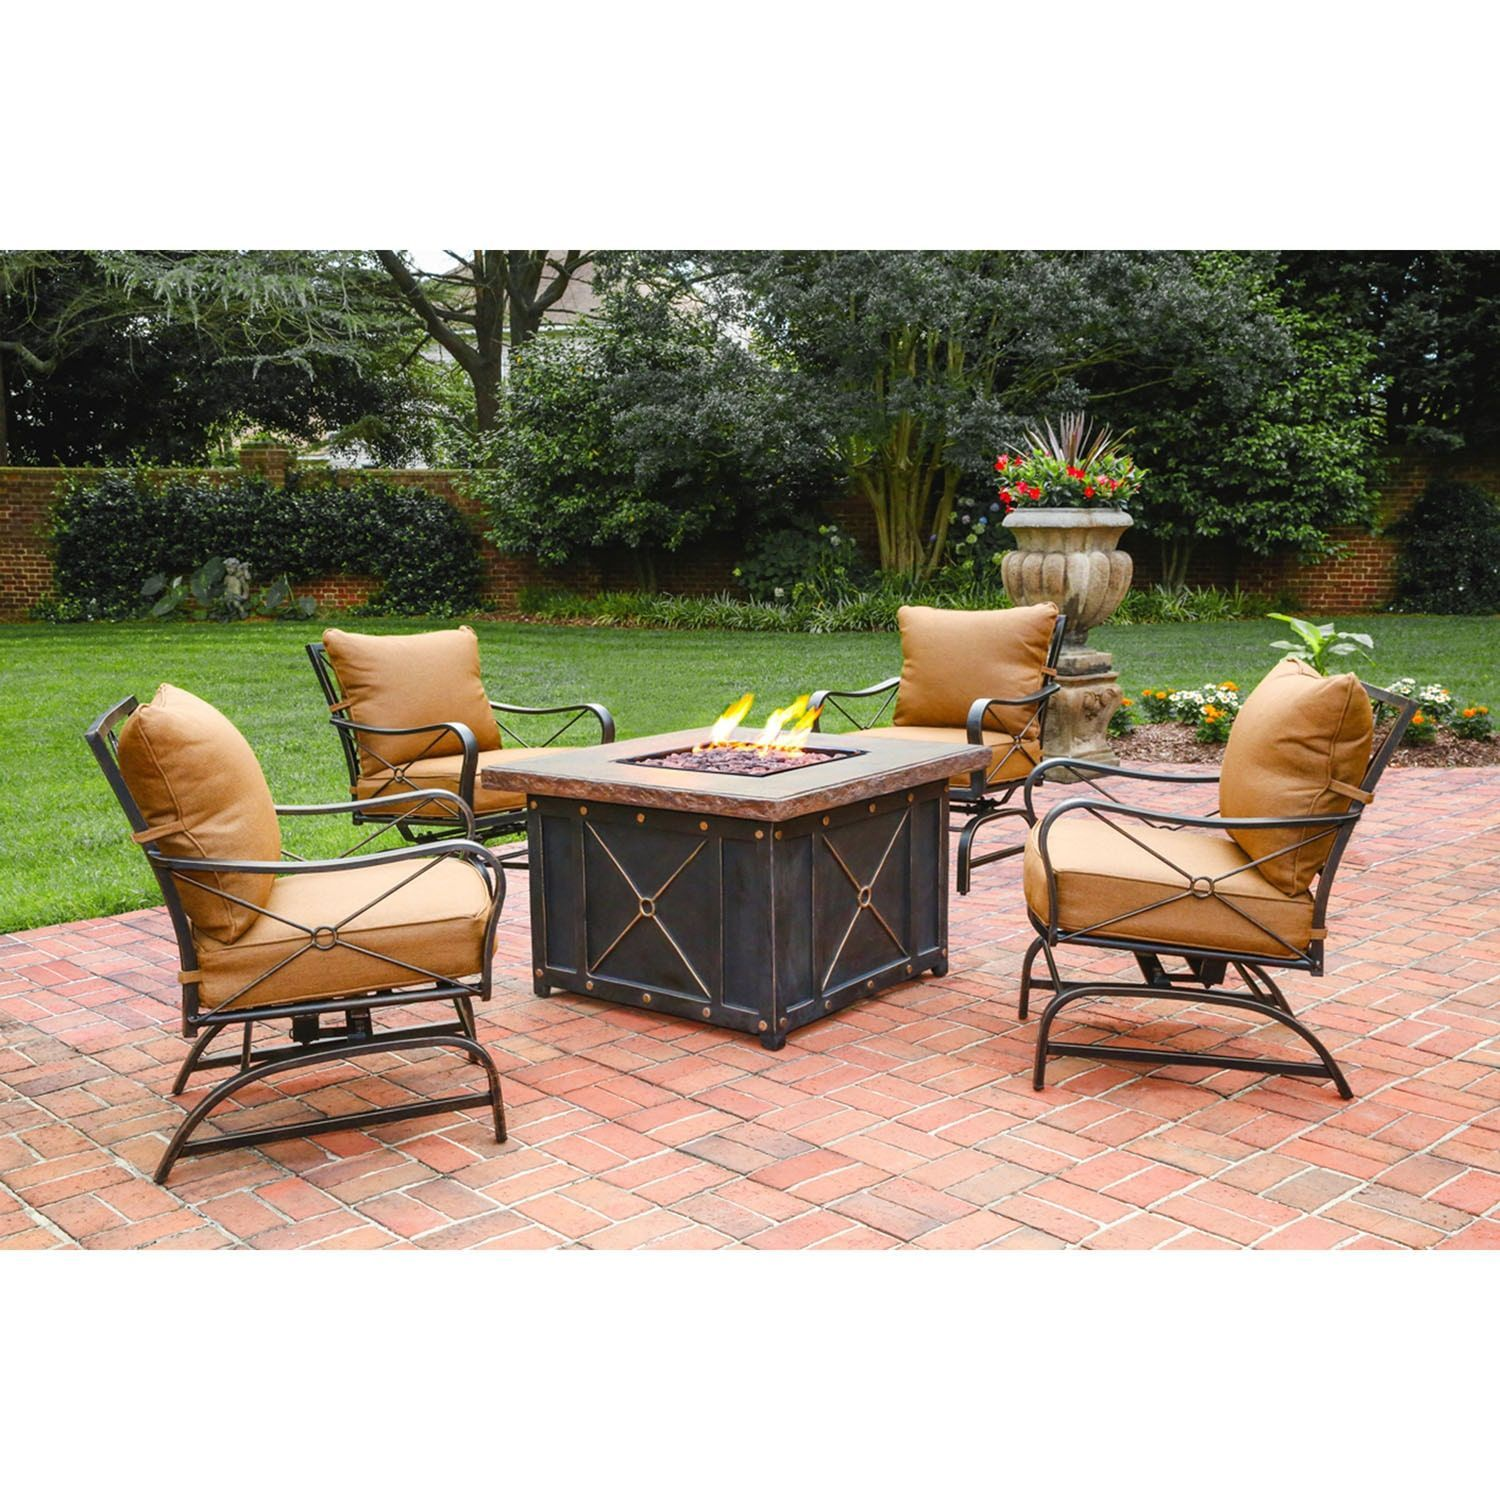 Cambridge Bradford Brown Metal 5 piece Lounge and Fire Pit Table